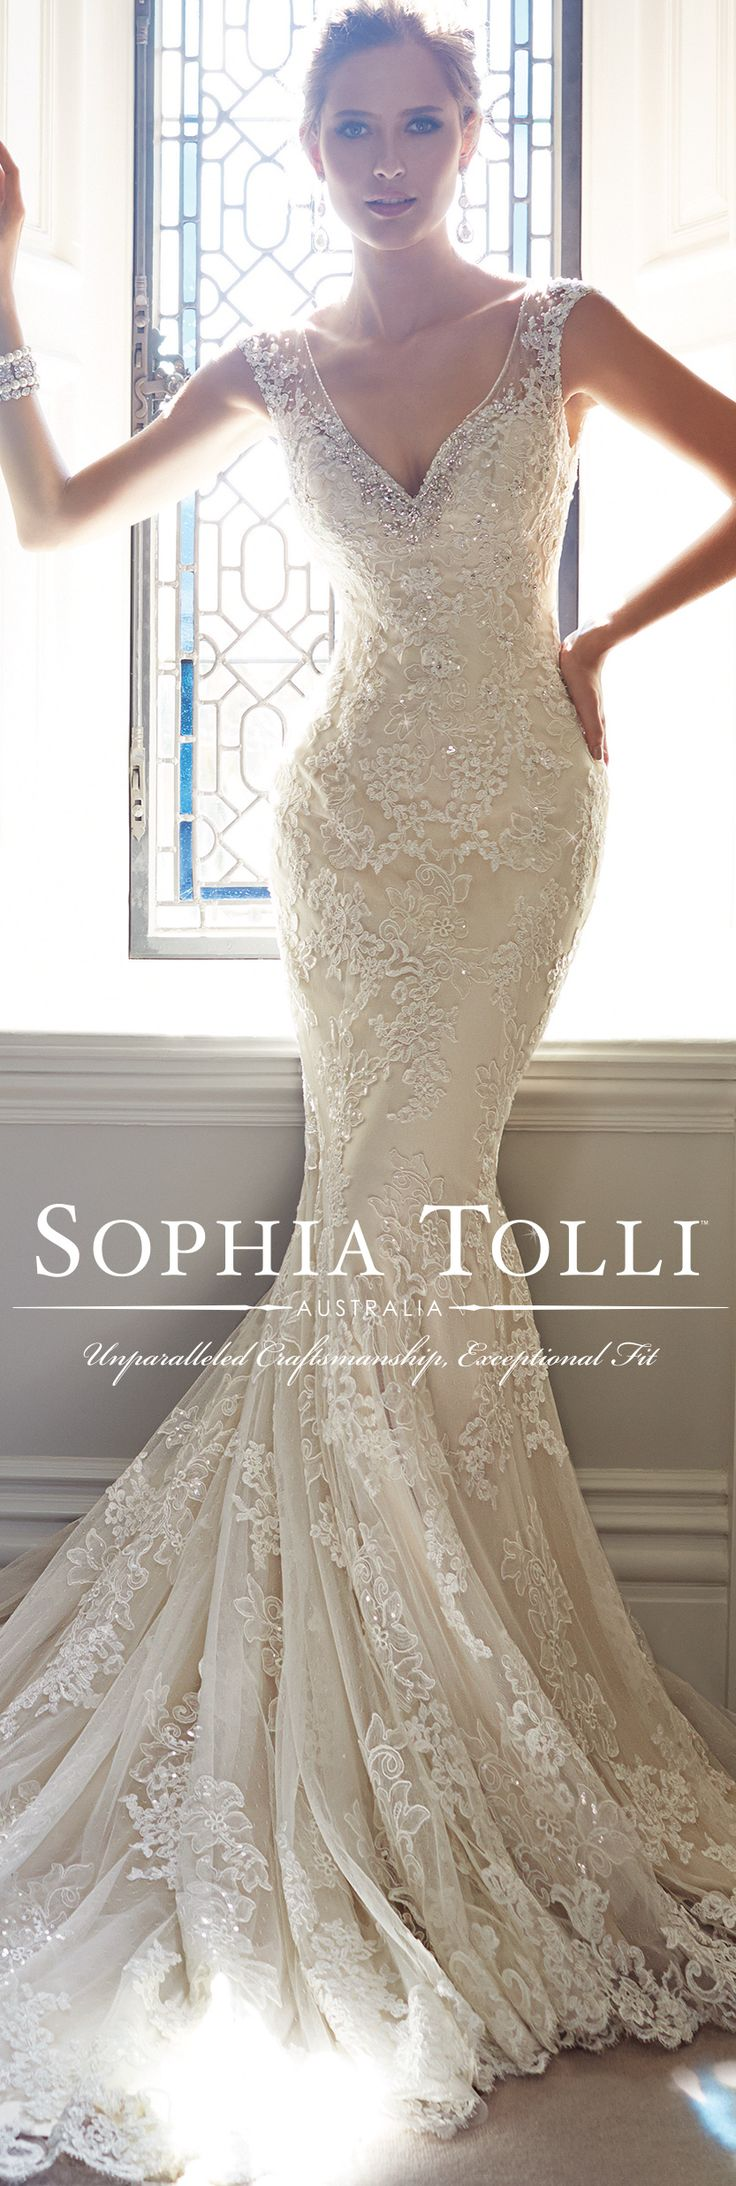 "If you are in love with lace than ""Leigh"" Y21432 by designer Sophia Tolli is must try on at your next fitting! Find your closest authorized retailer on sophiatolli.com"